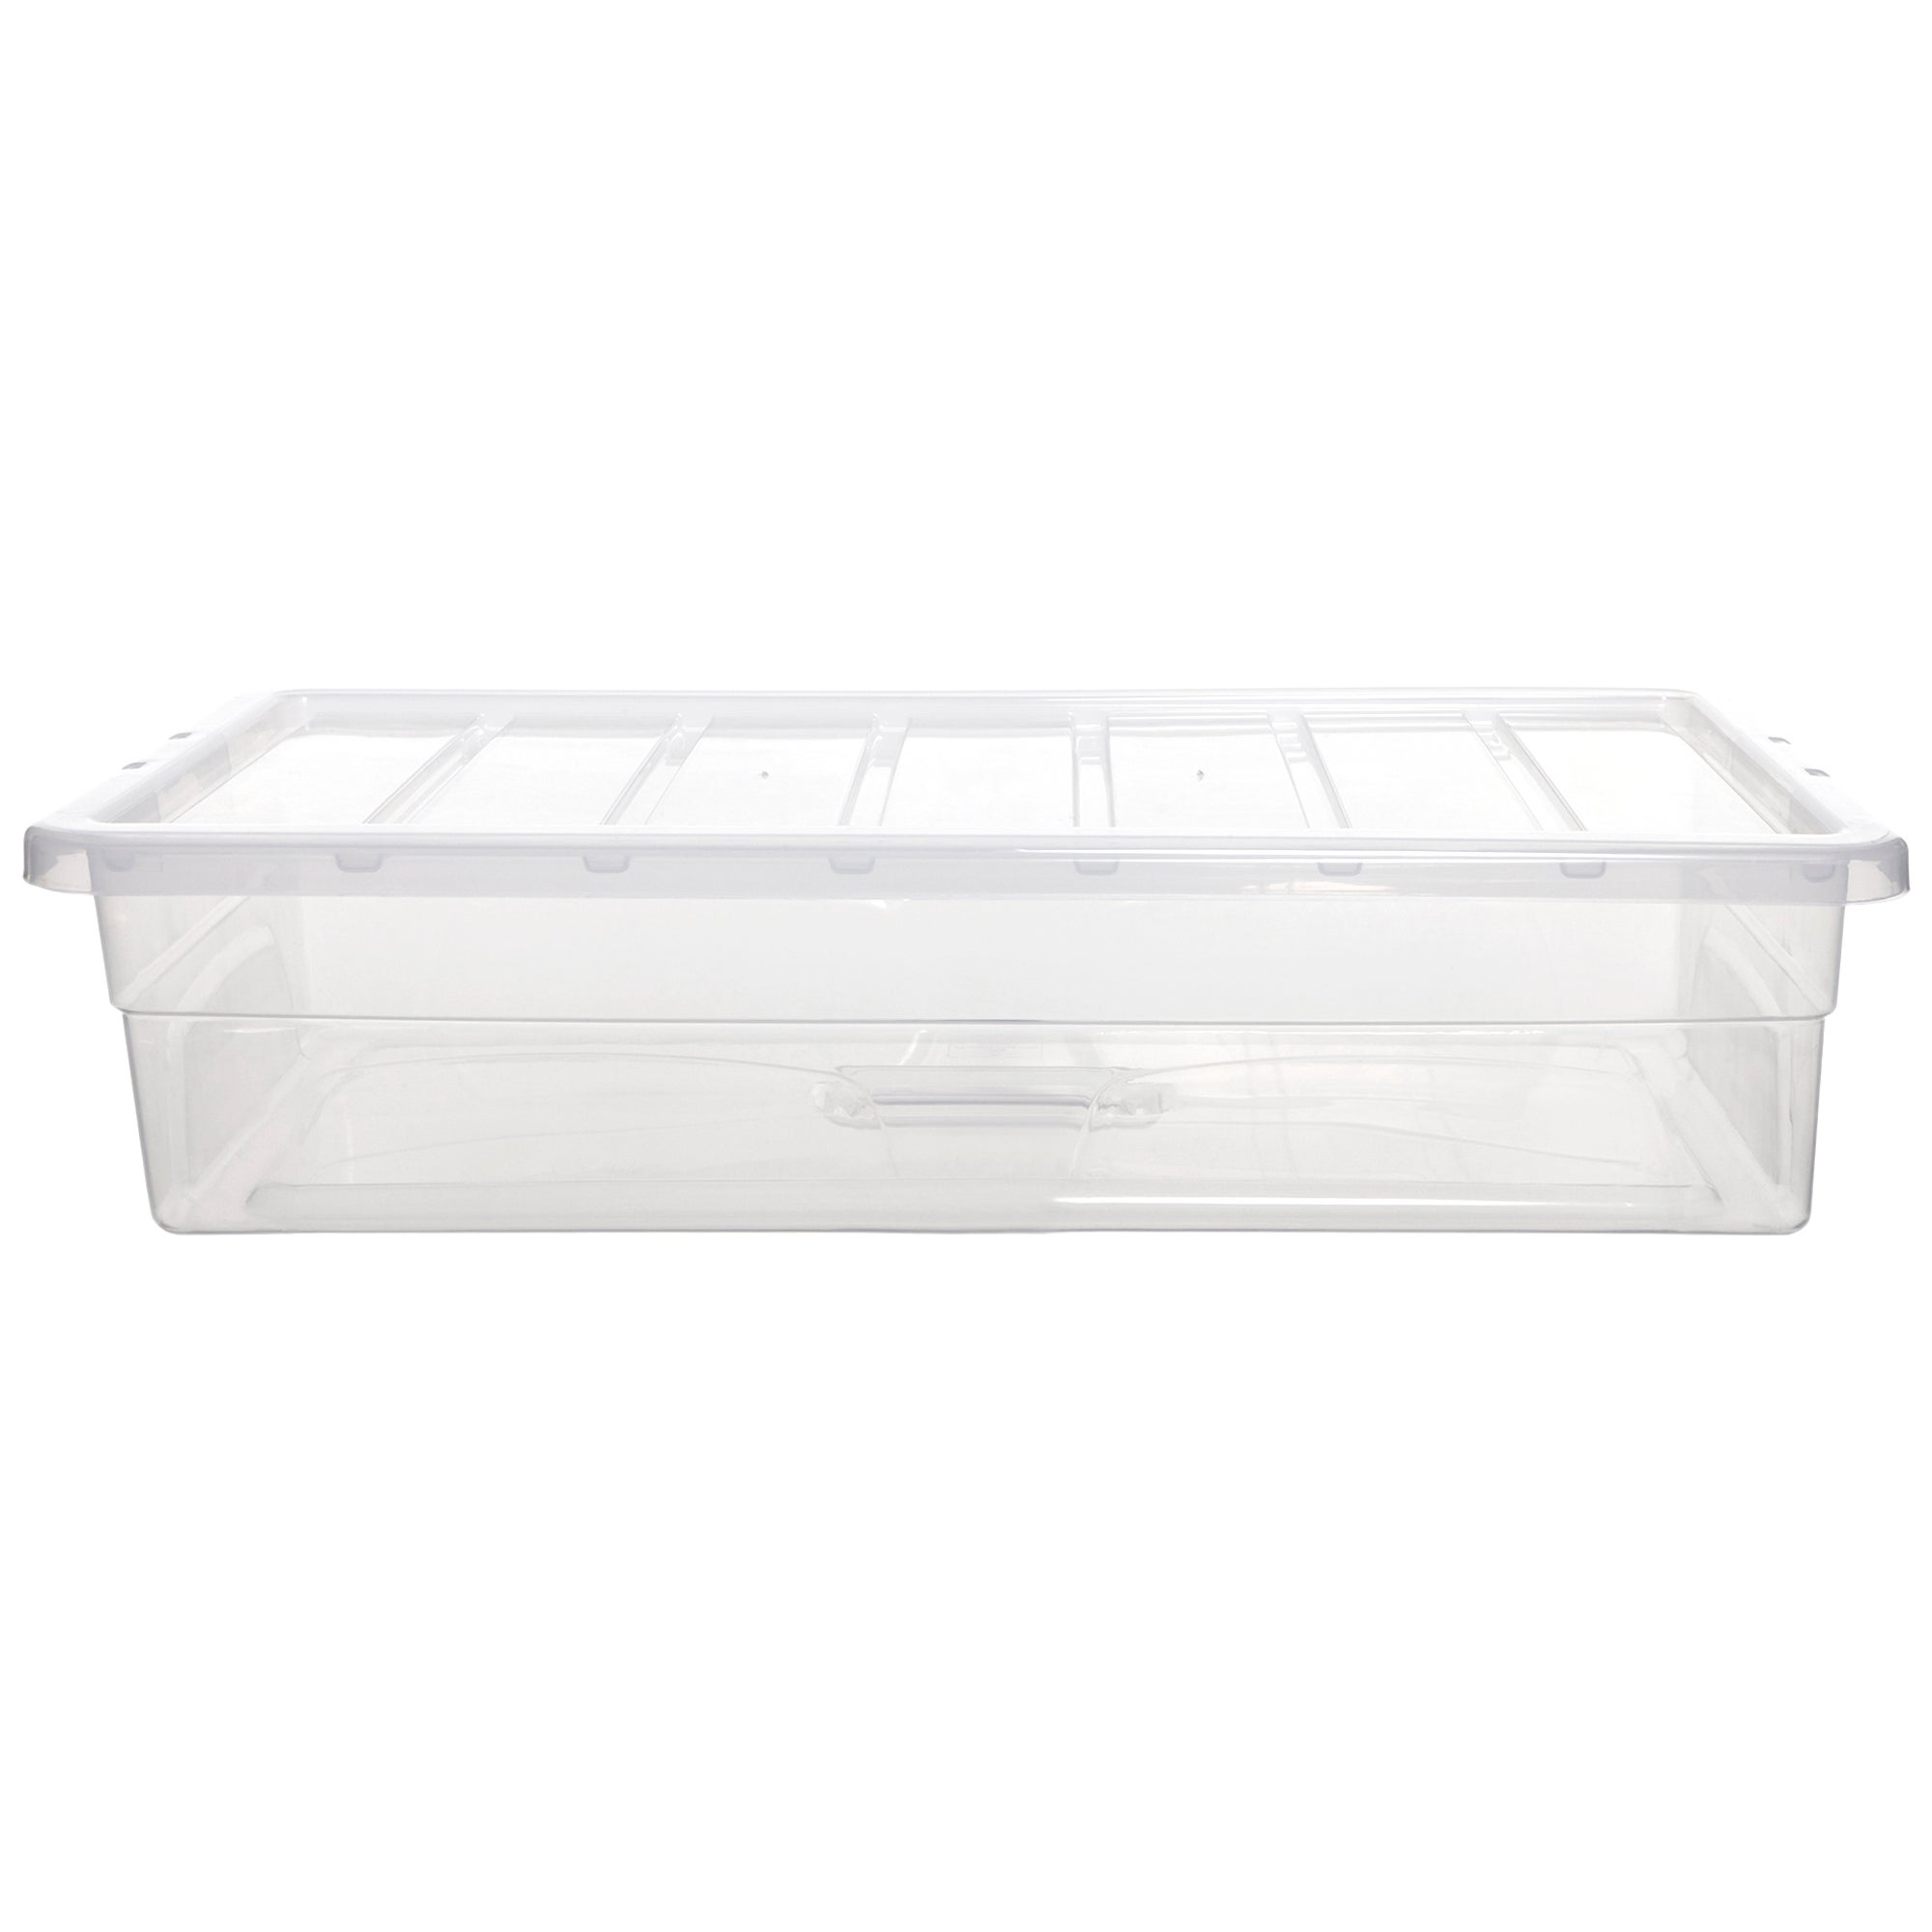 Underbed Storage Box Shop For Cheap Products And Save Online